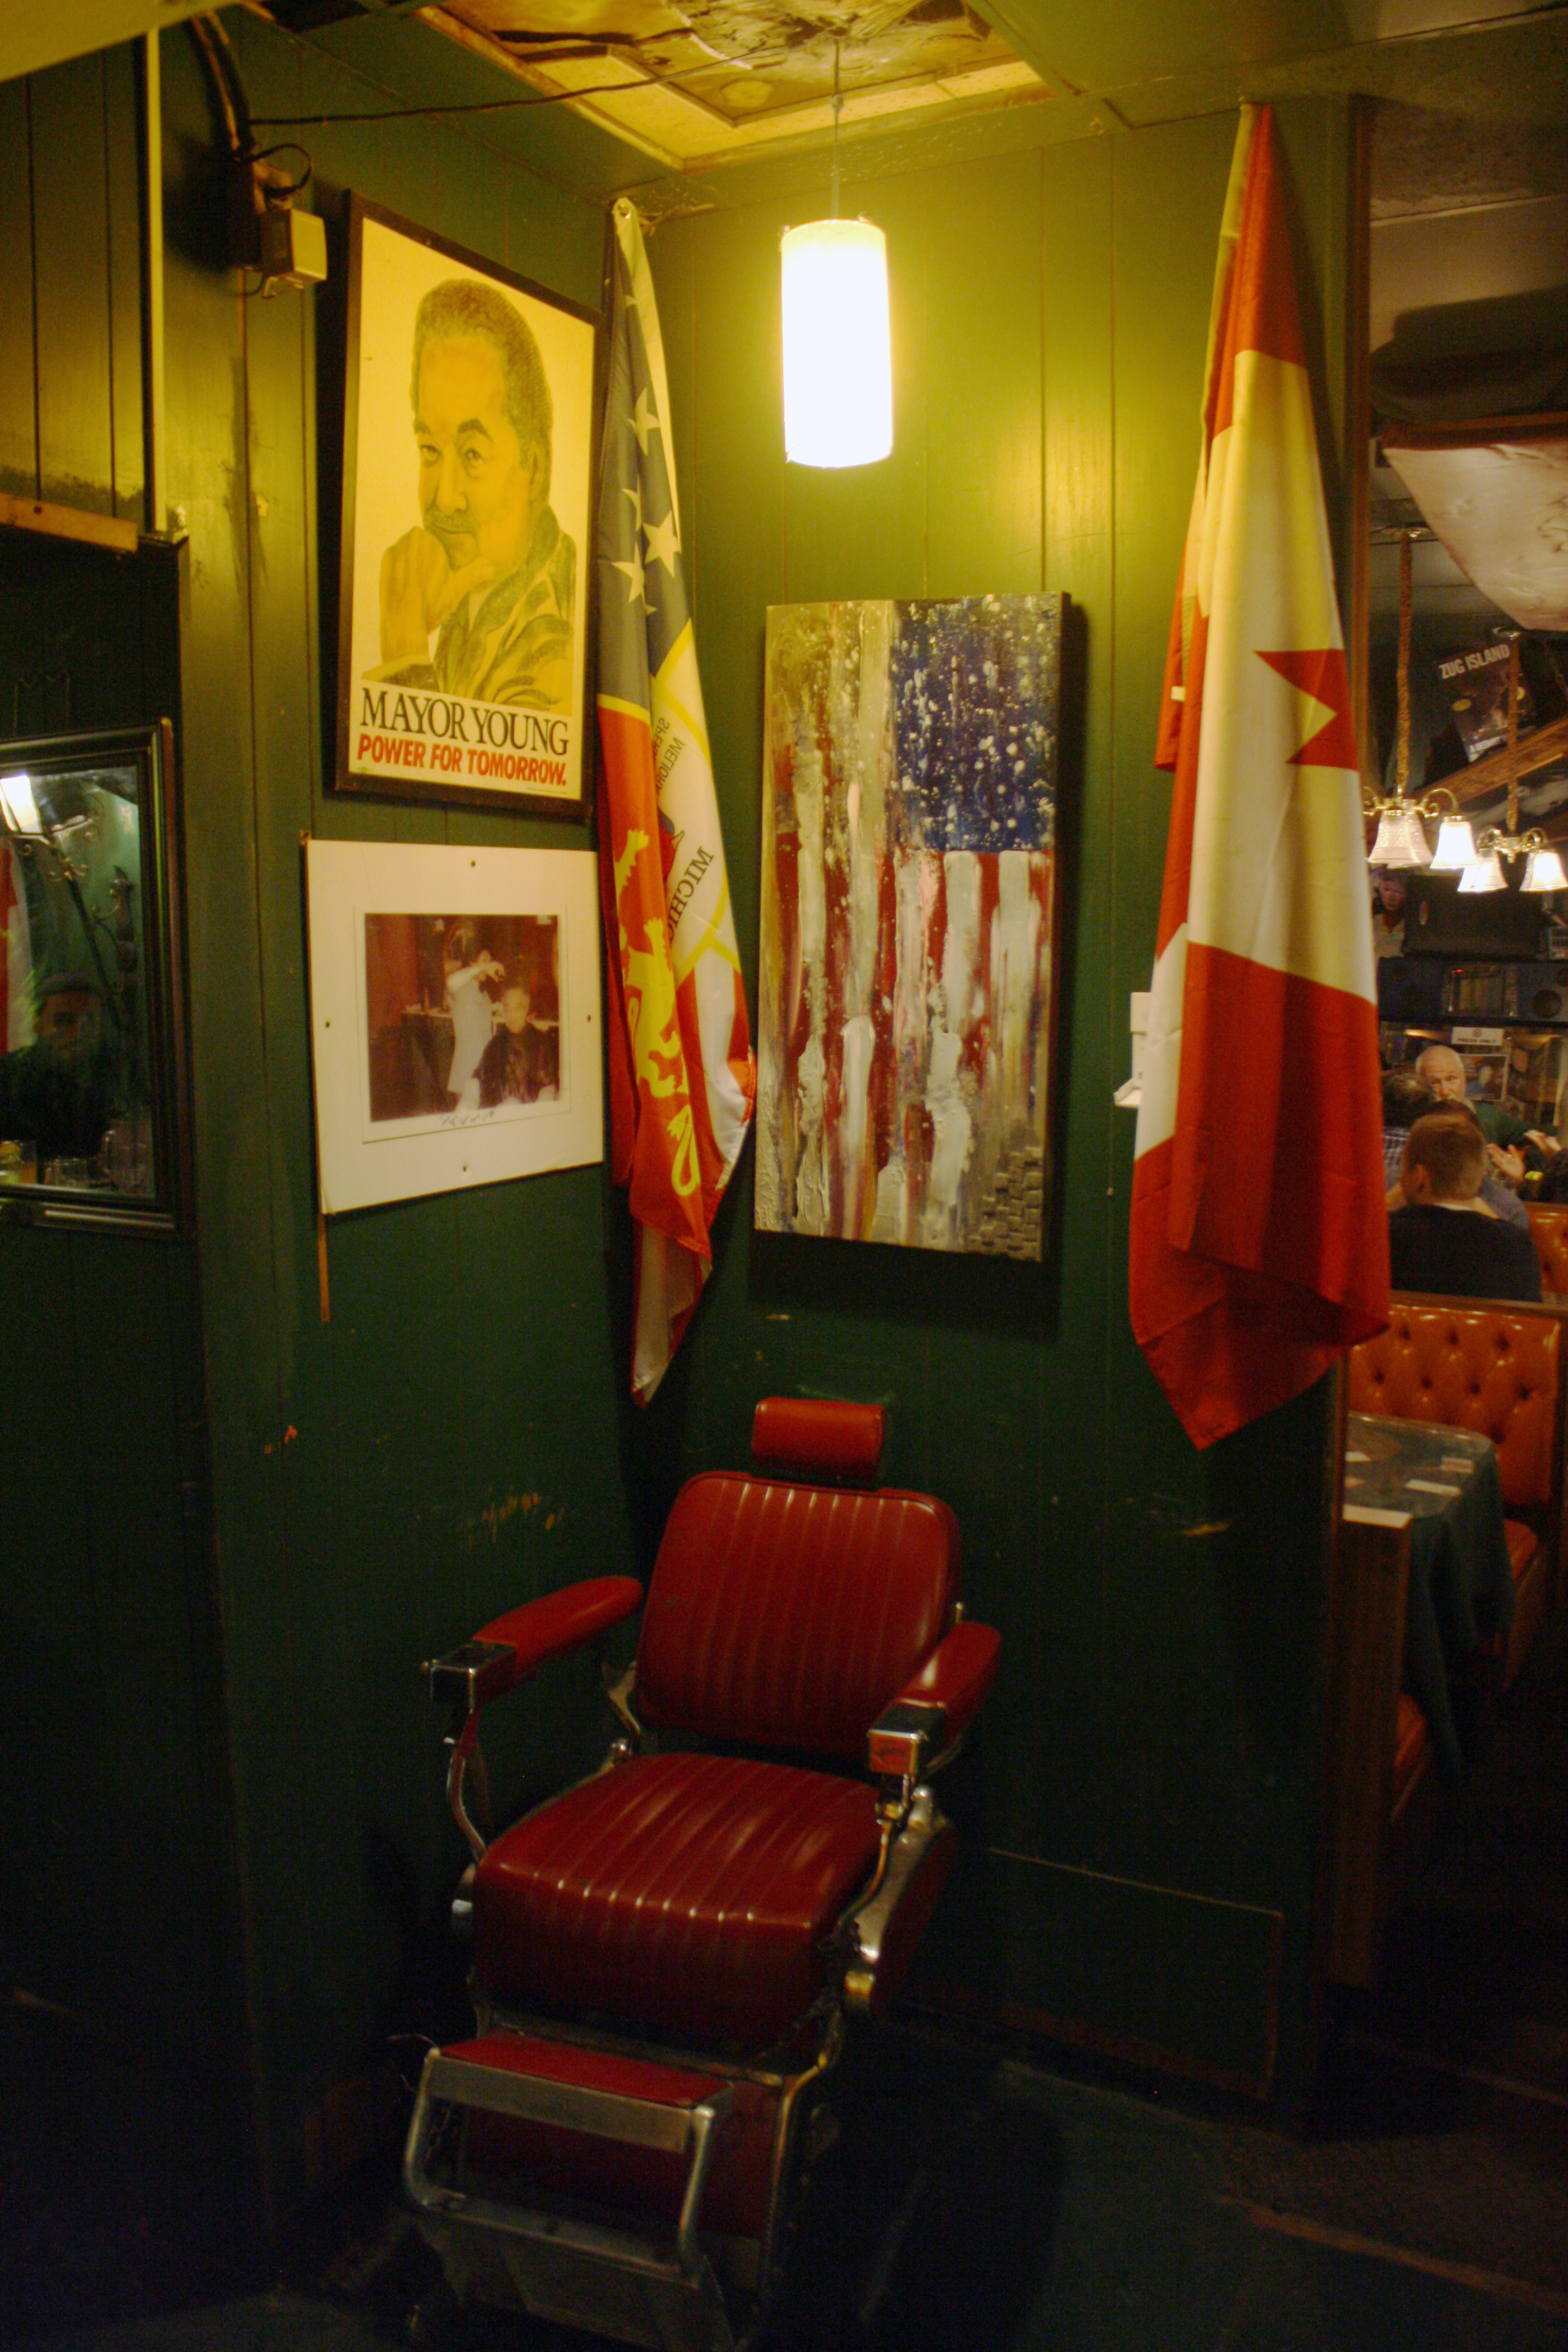 This is the chair that Coleman Young sat in when he got his hair cut at Jack's Barber Lounge. It is now on display at Cafe D'Mongo's Speakeasy, the popular downtown bar owned by Larry Mongo. Photo by Rob Szypko